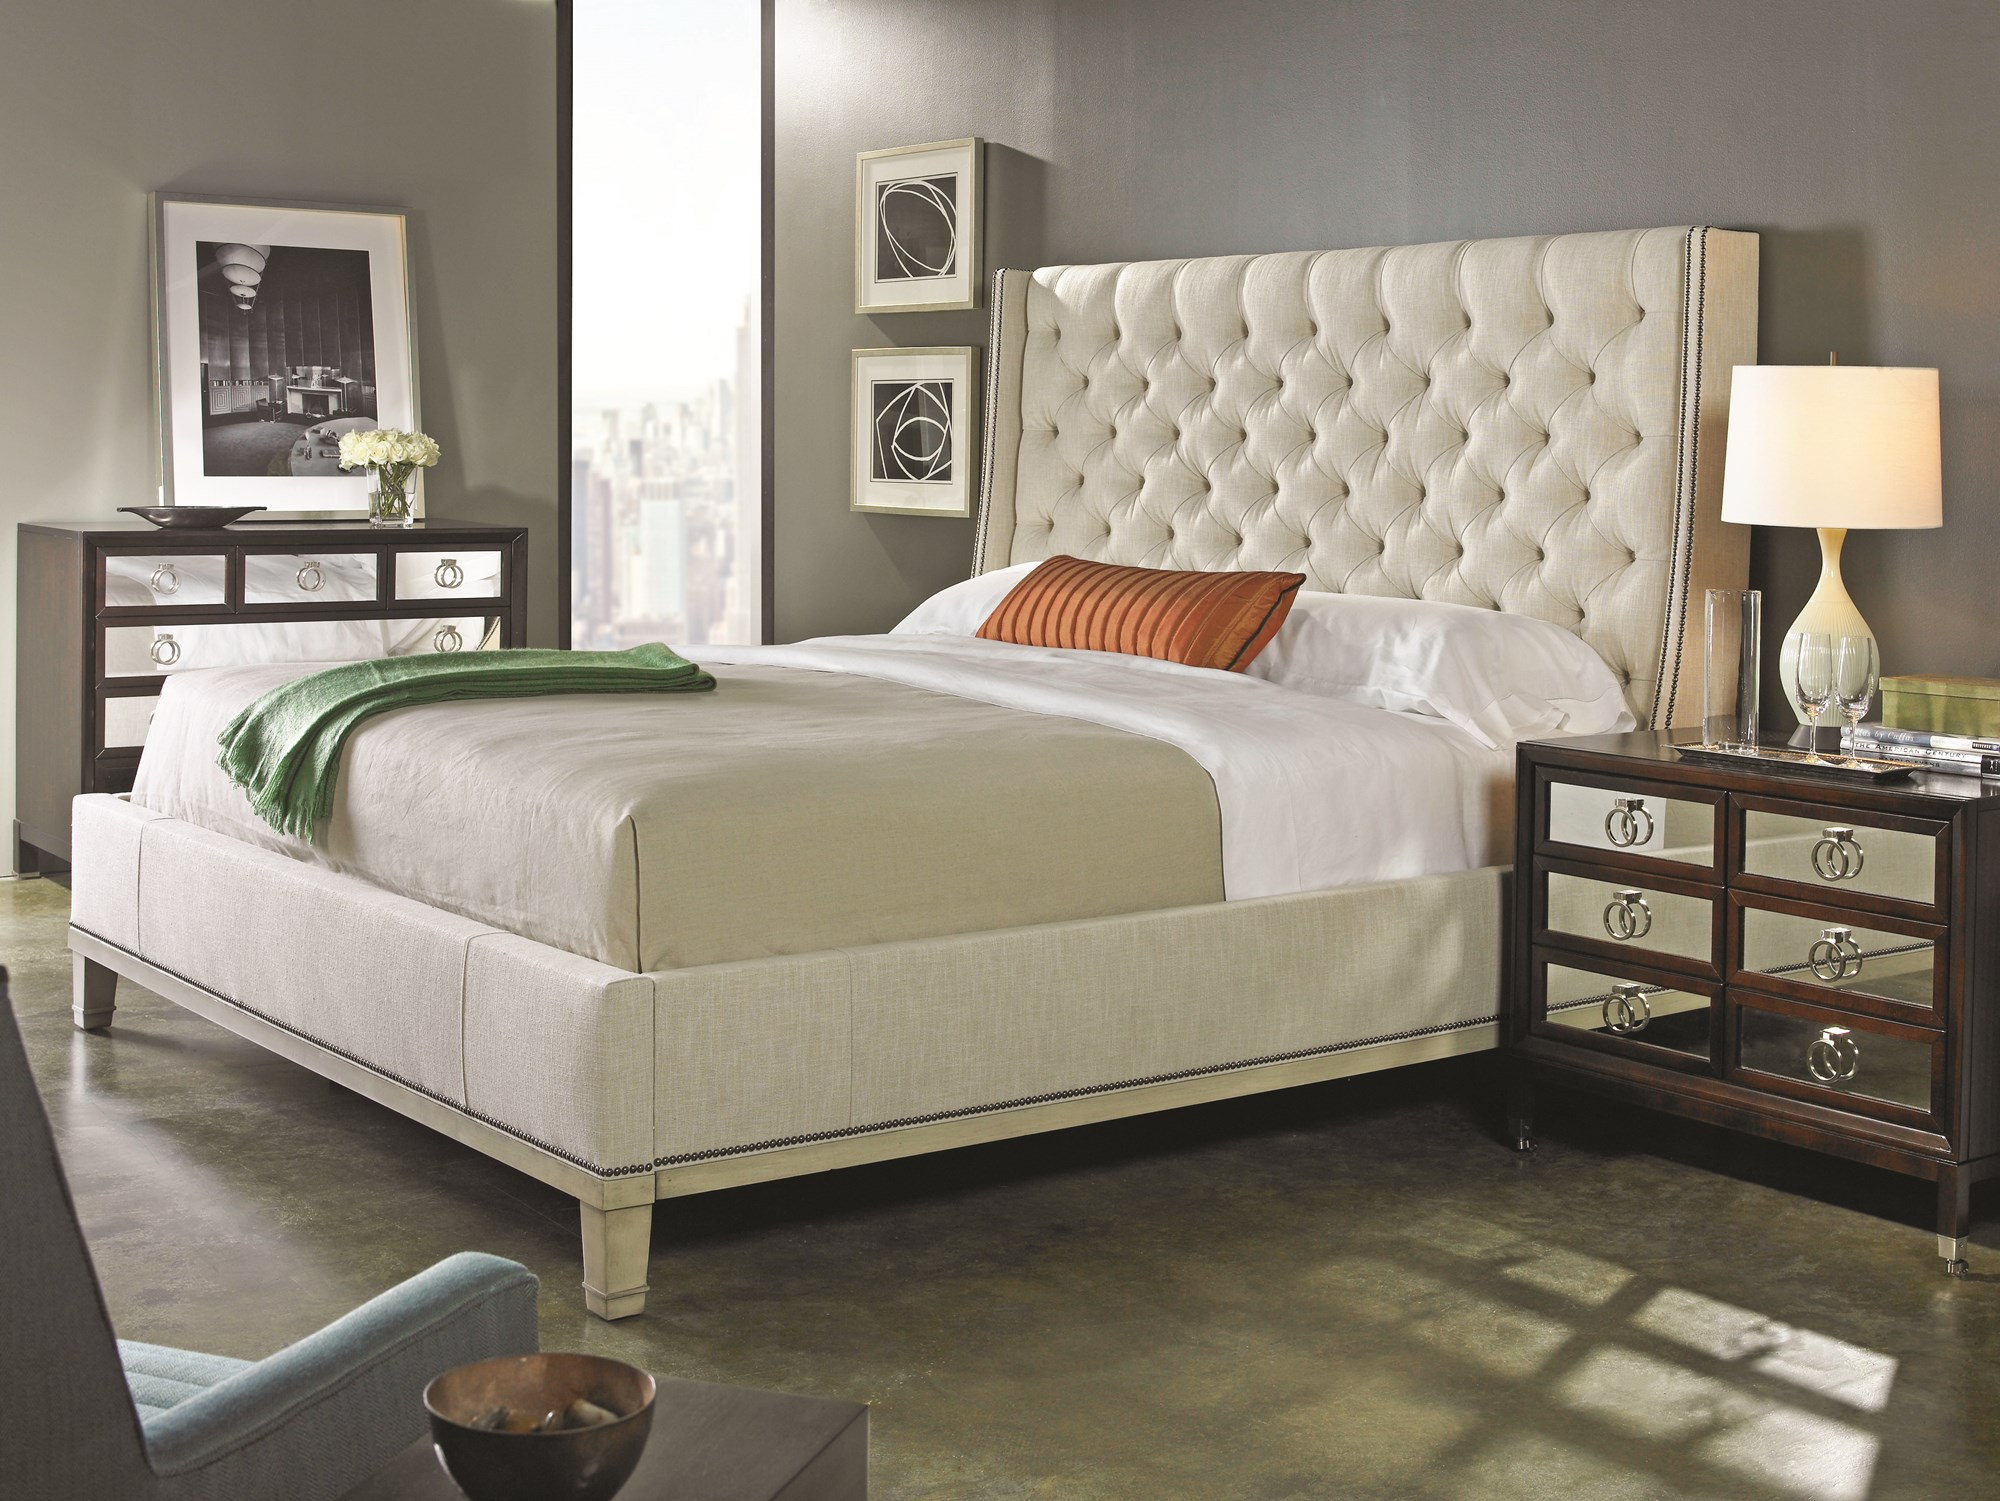 Cleo king bed beds bedroom robb stucky for Robb and stucky bedroom furniture